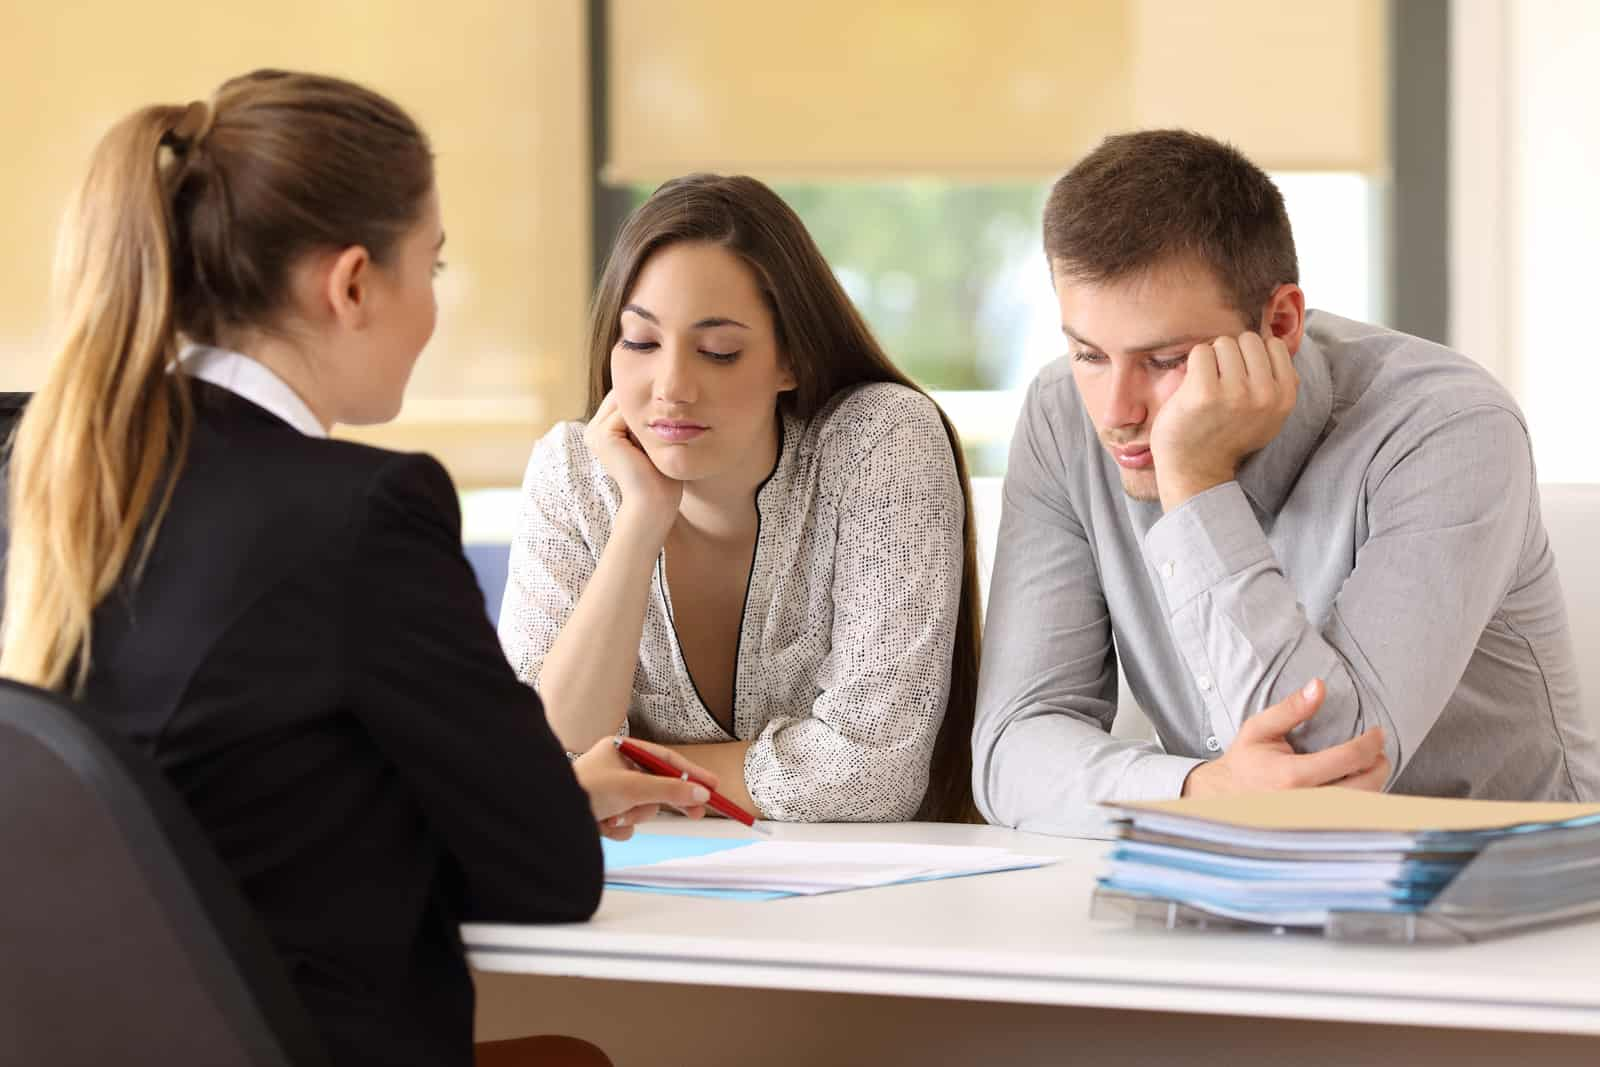 real estate broker dealing with difficult clients